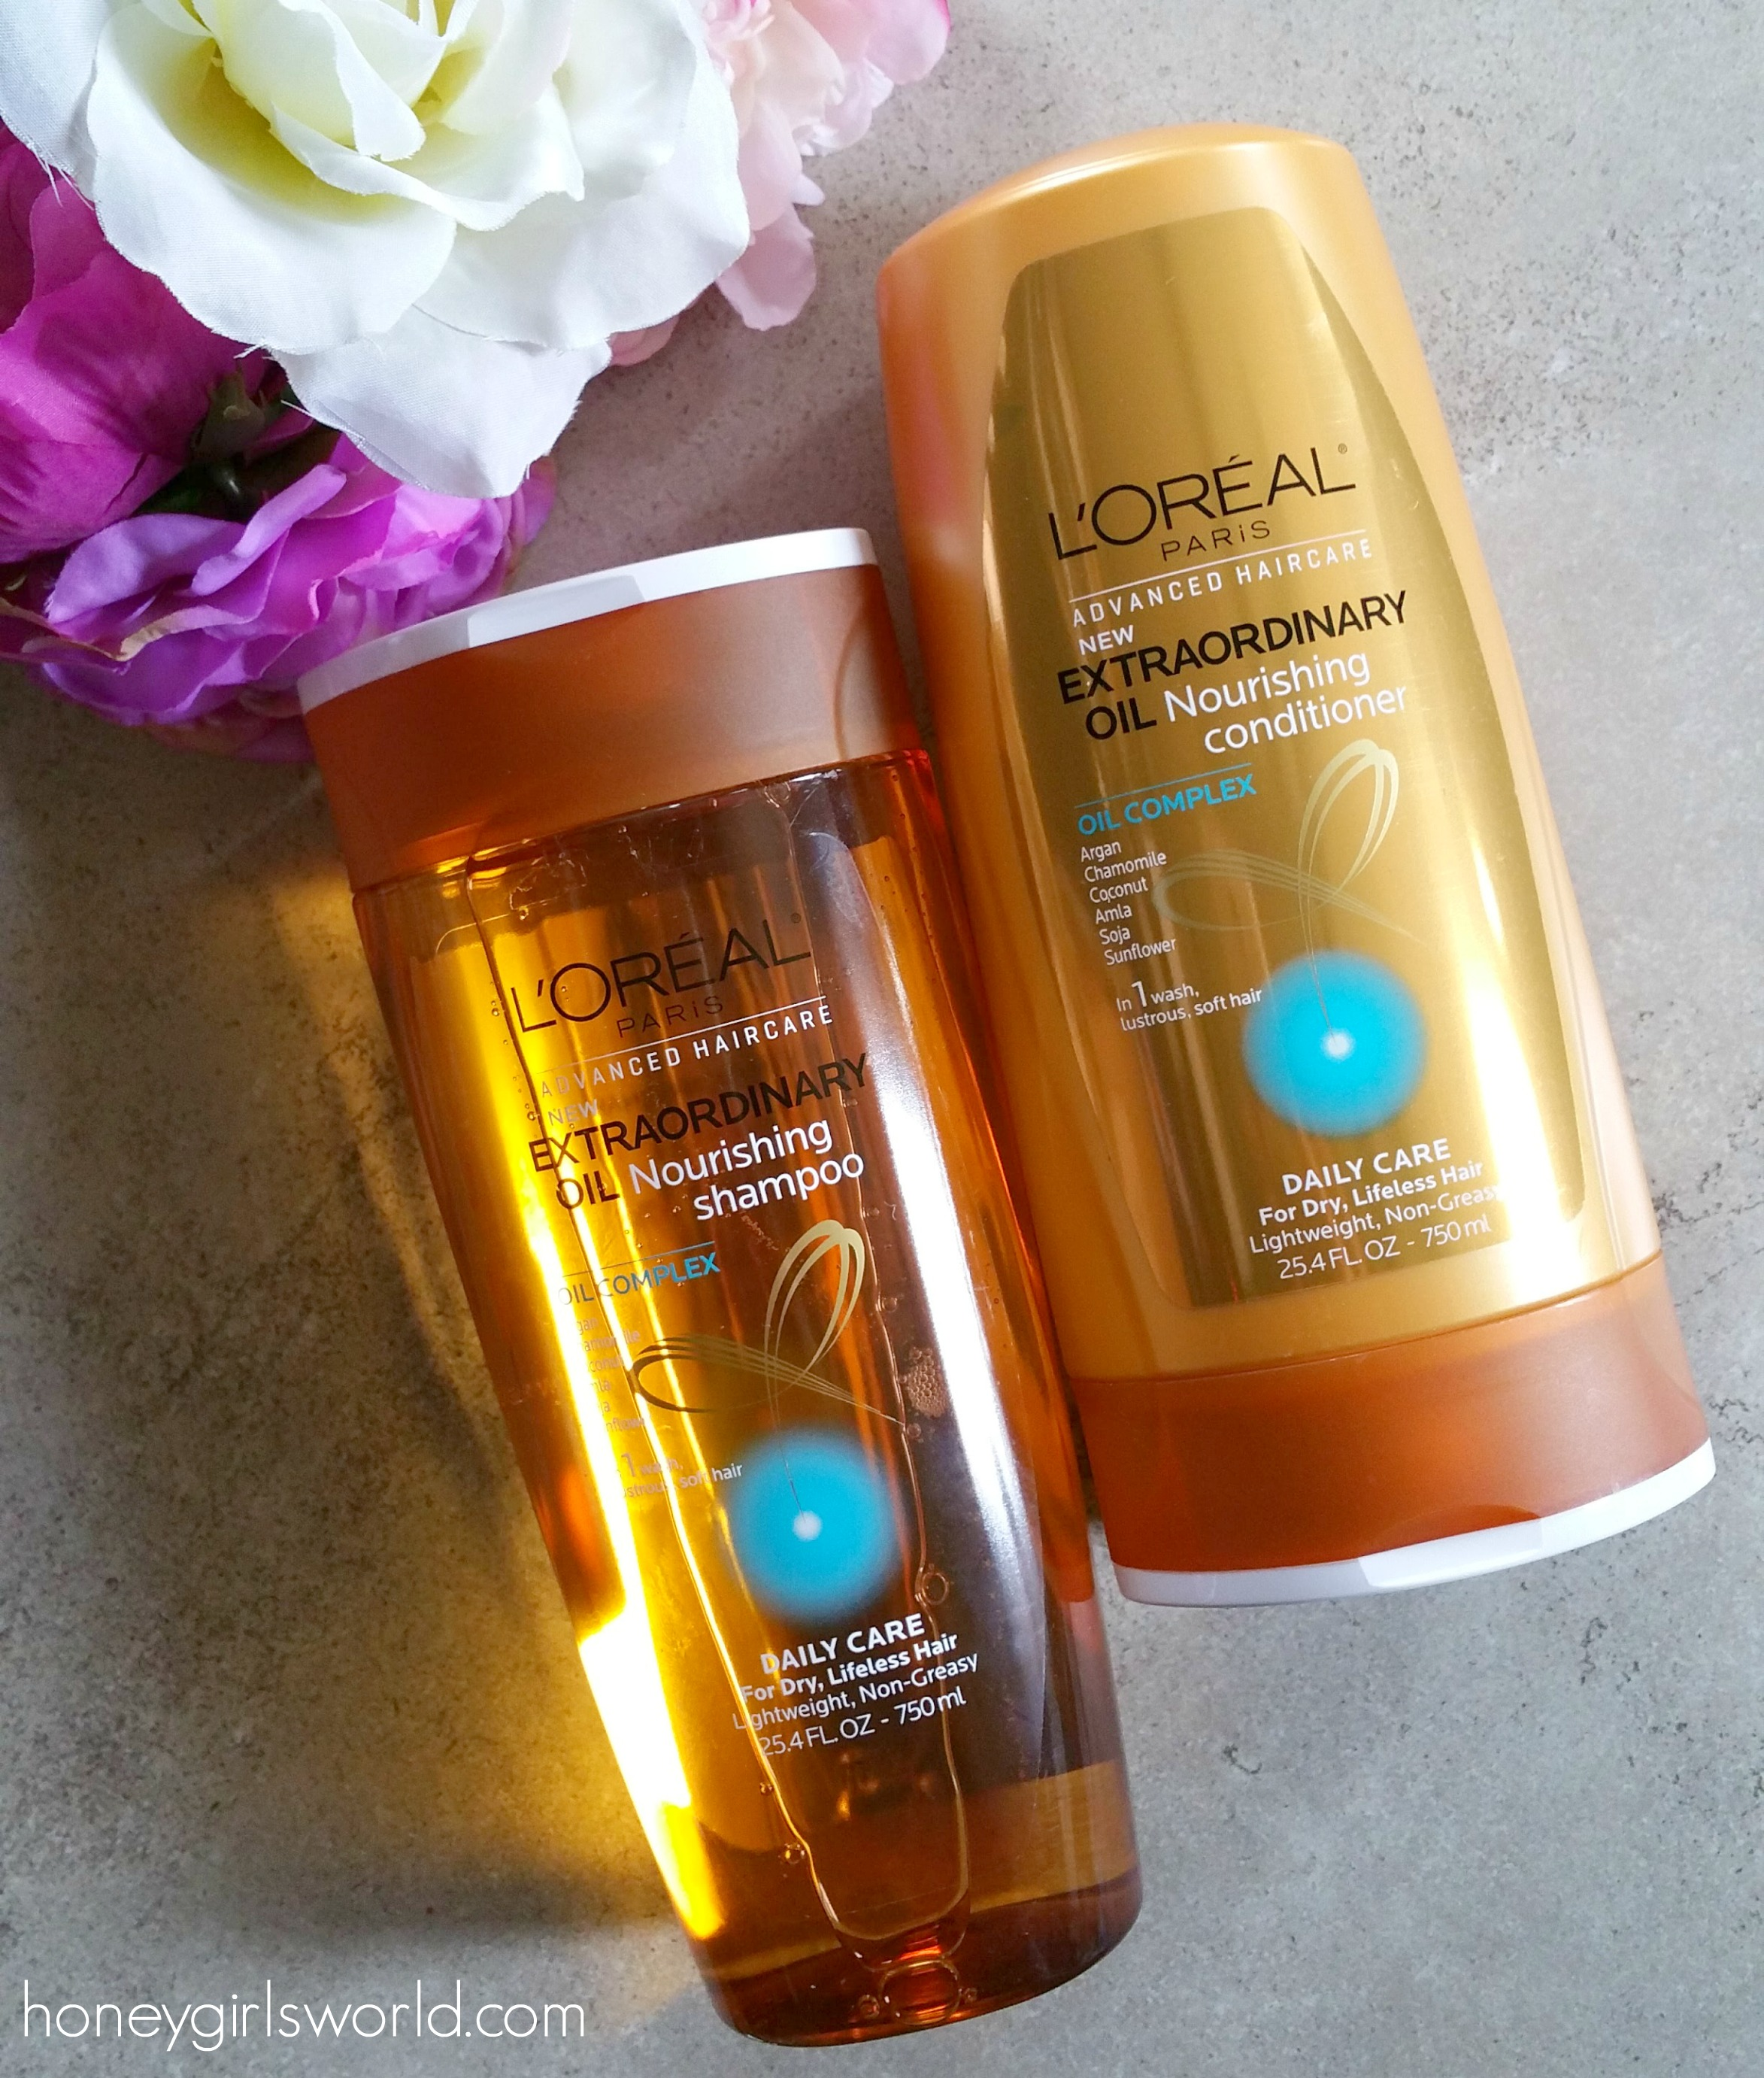 New L'Oreal Paris Advanced Haircare Extraordinary Oil Collection - Review - Honeygirl's World - Lifestyle & Beauty Blog